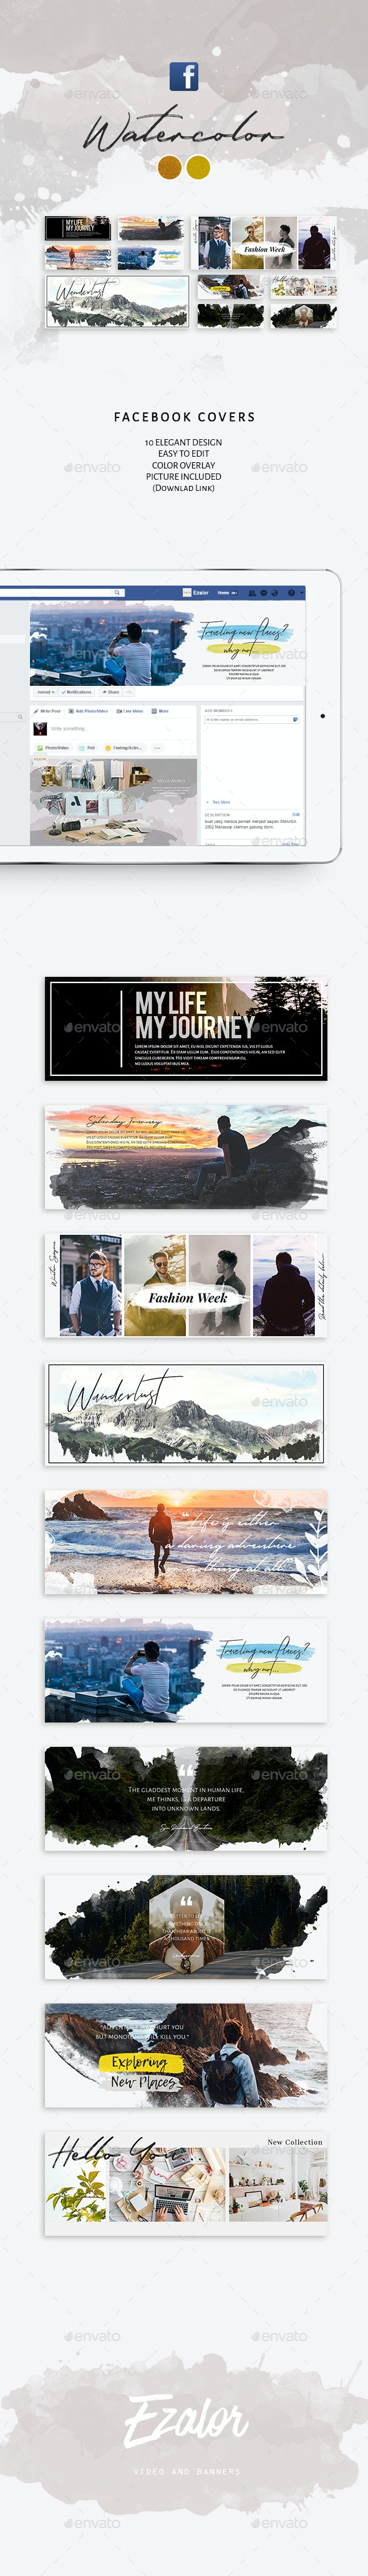 Facebook Covers Watercolor - Facebook Timeline Covers Social Media